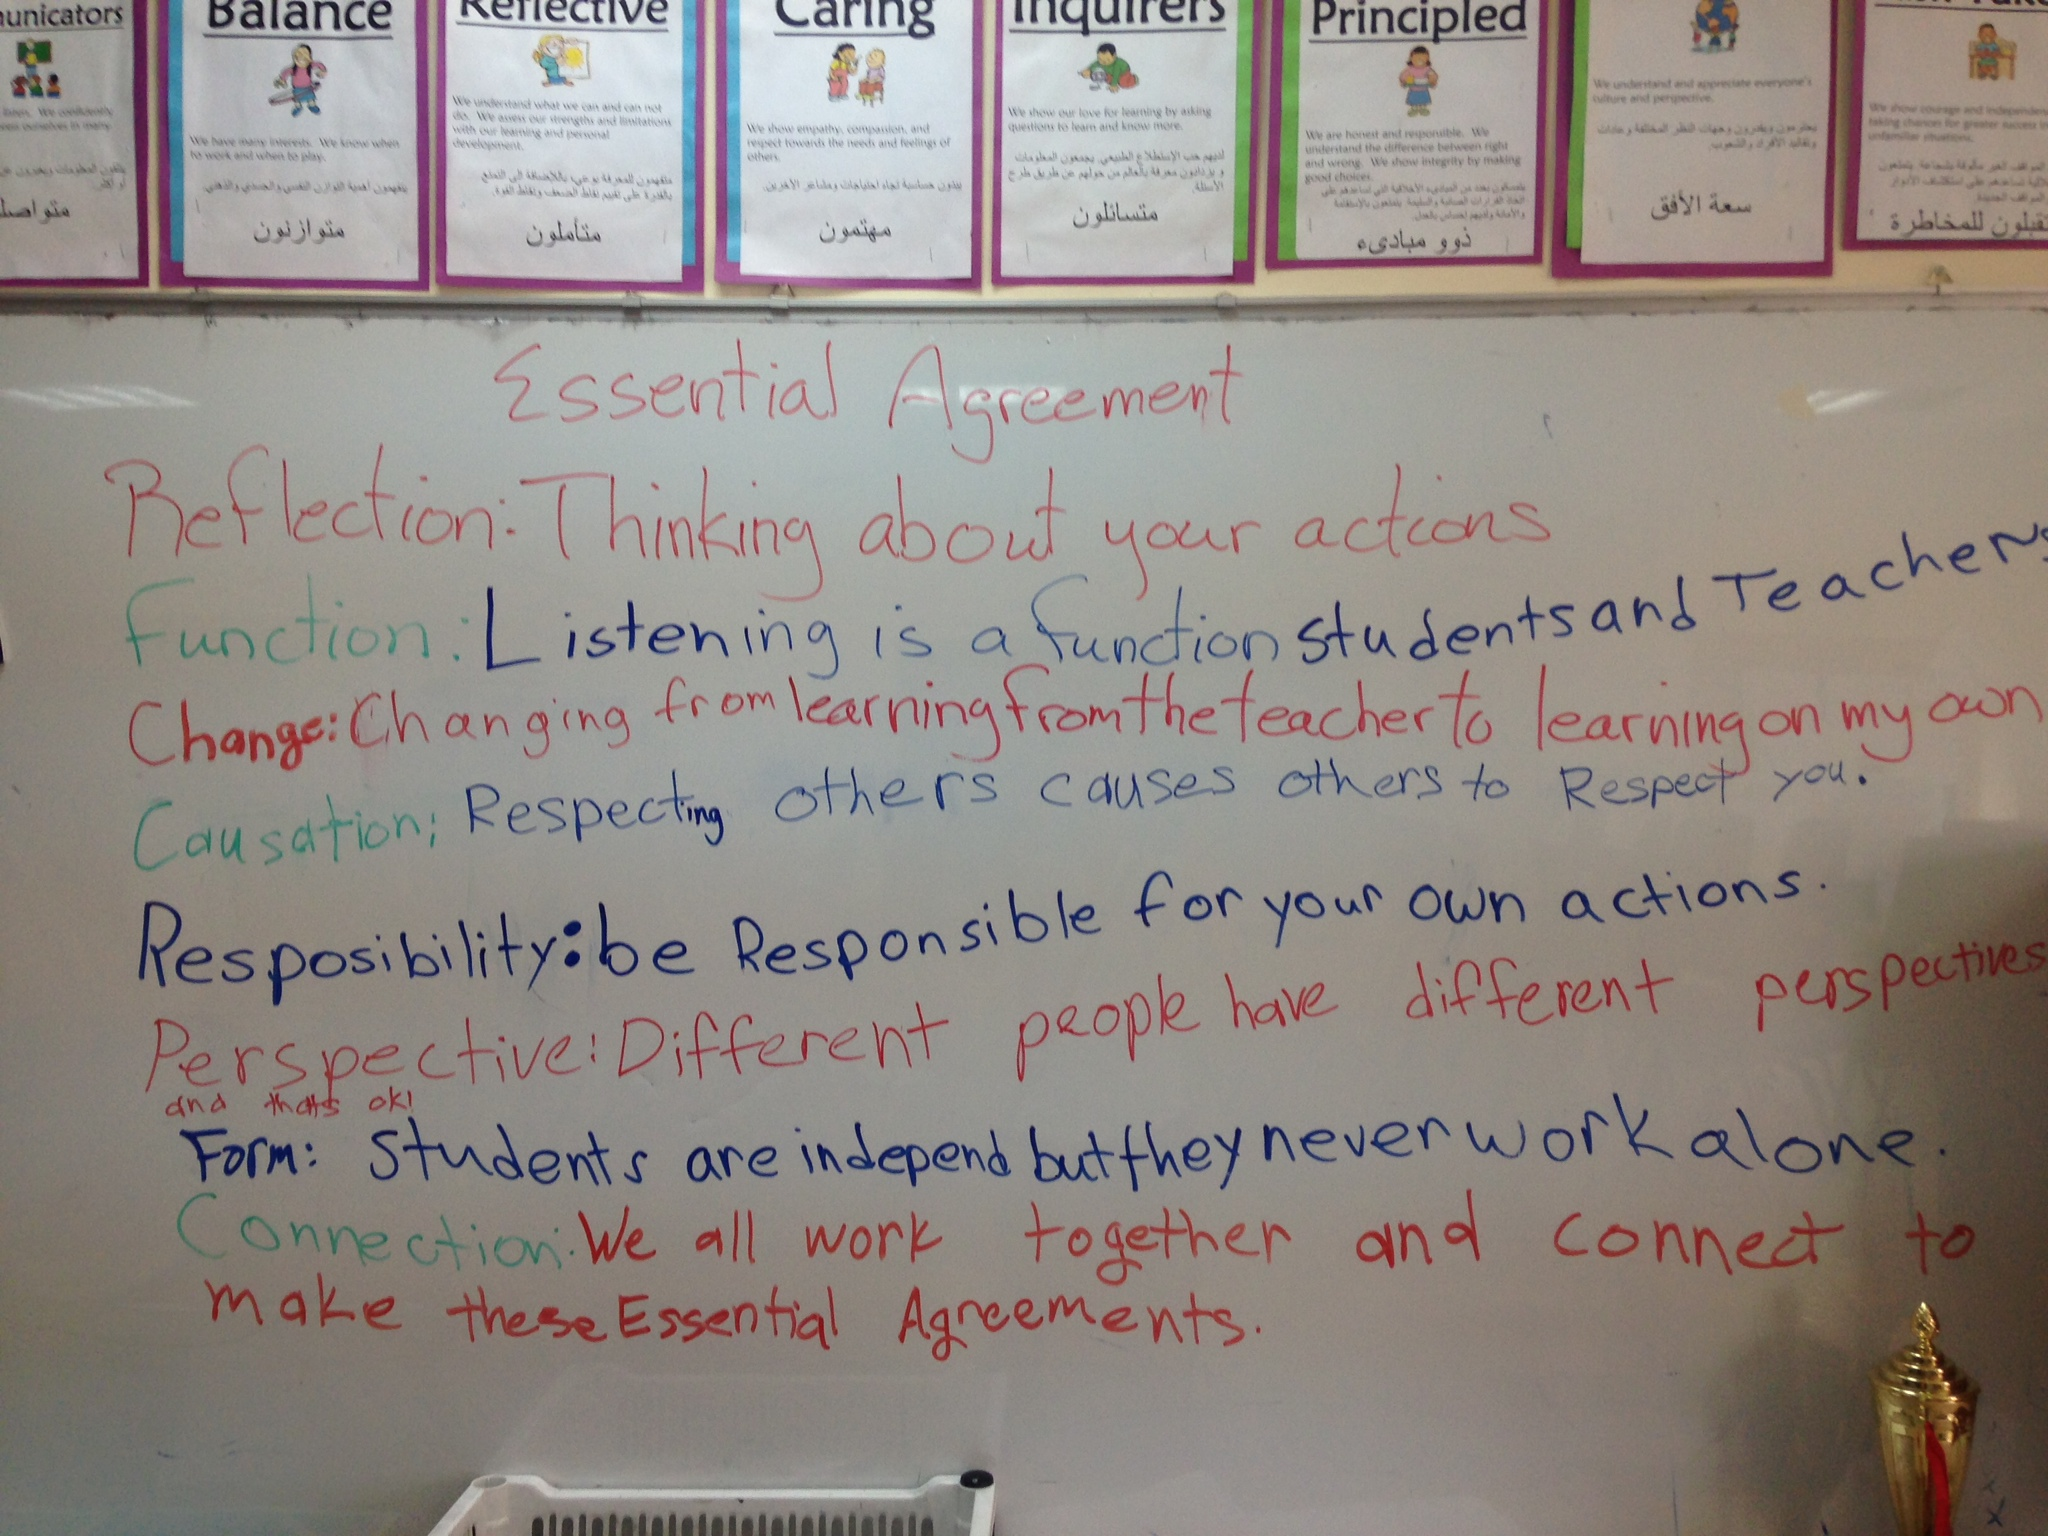 Pyp unit of inquiry exploration essay - R and D Cheer